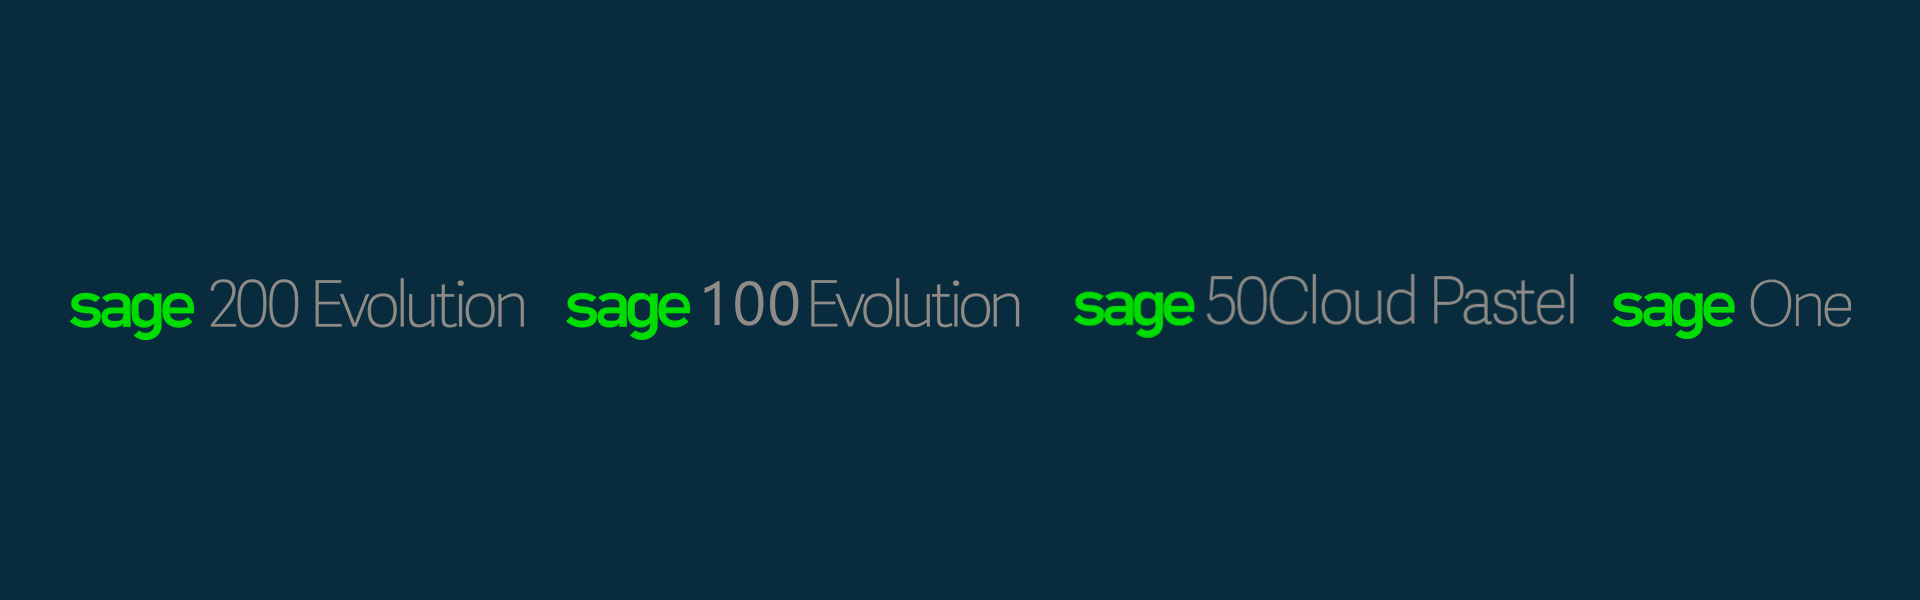 the difference between sage 200 evolution and sage 100 evolution and sage 50 cloud and sage one accounting software south africa comparison